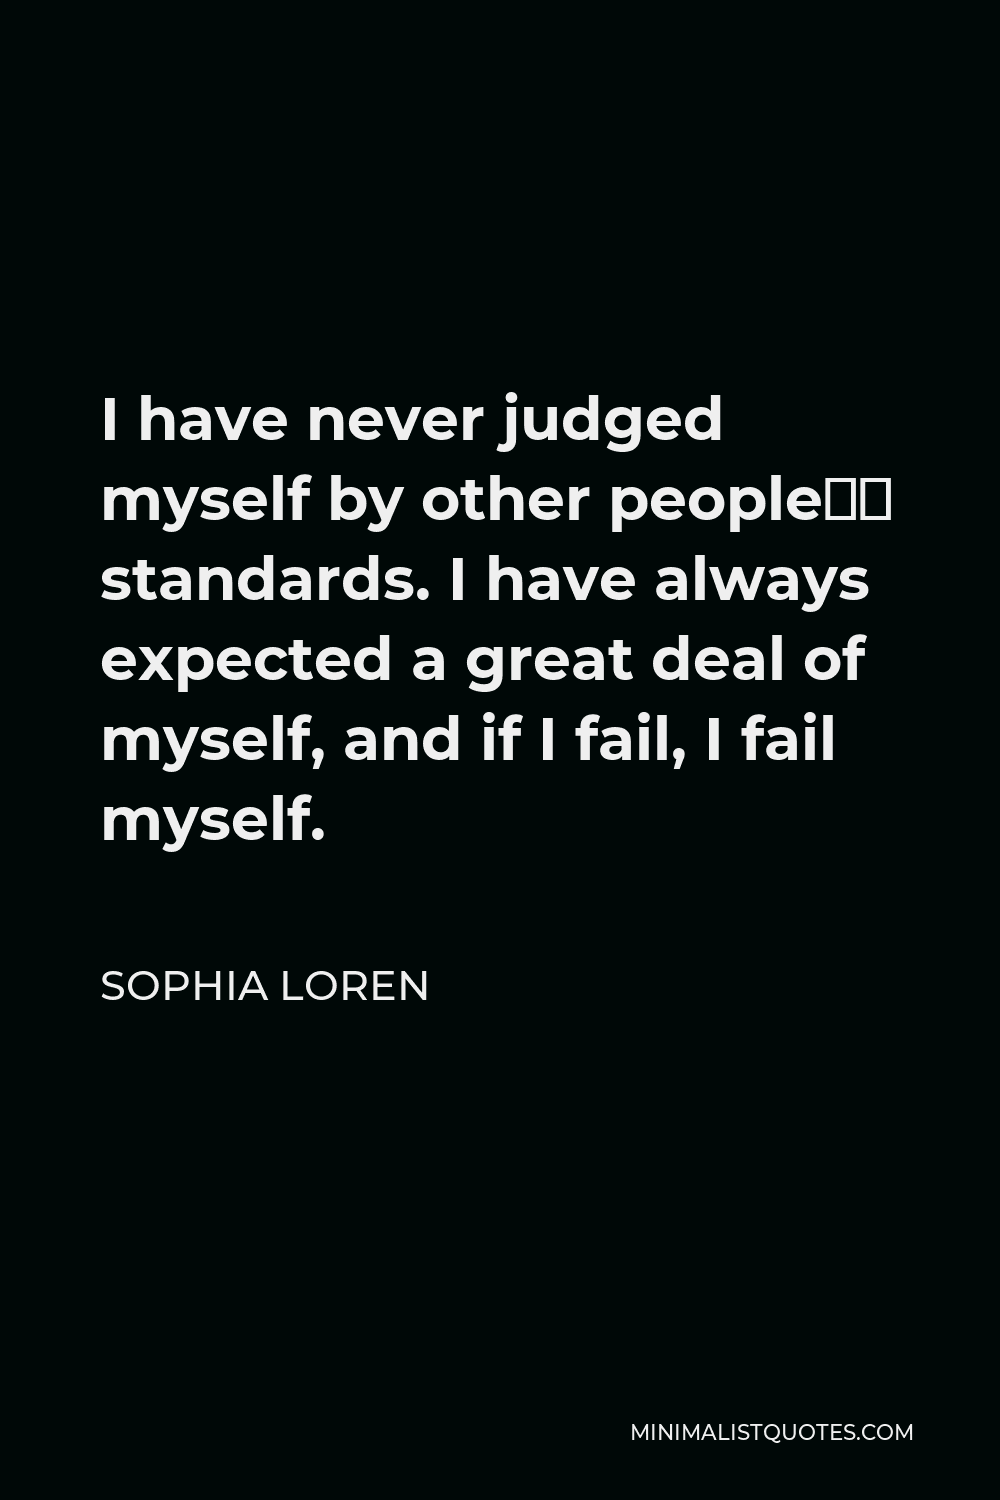 Sophia Loren Quote - I have never judged myself by other people's standards. I have always expected a great deal of myself, and if I fail, I fail myself.